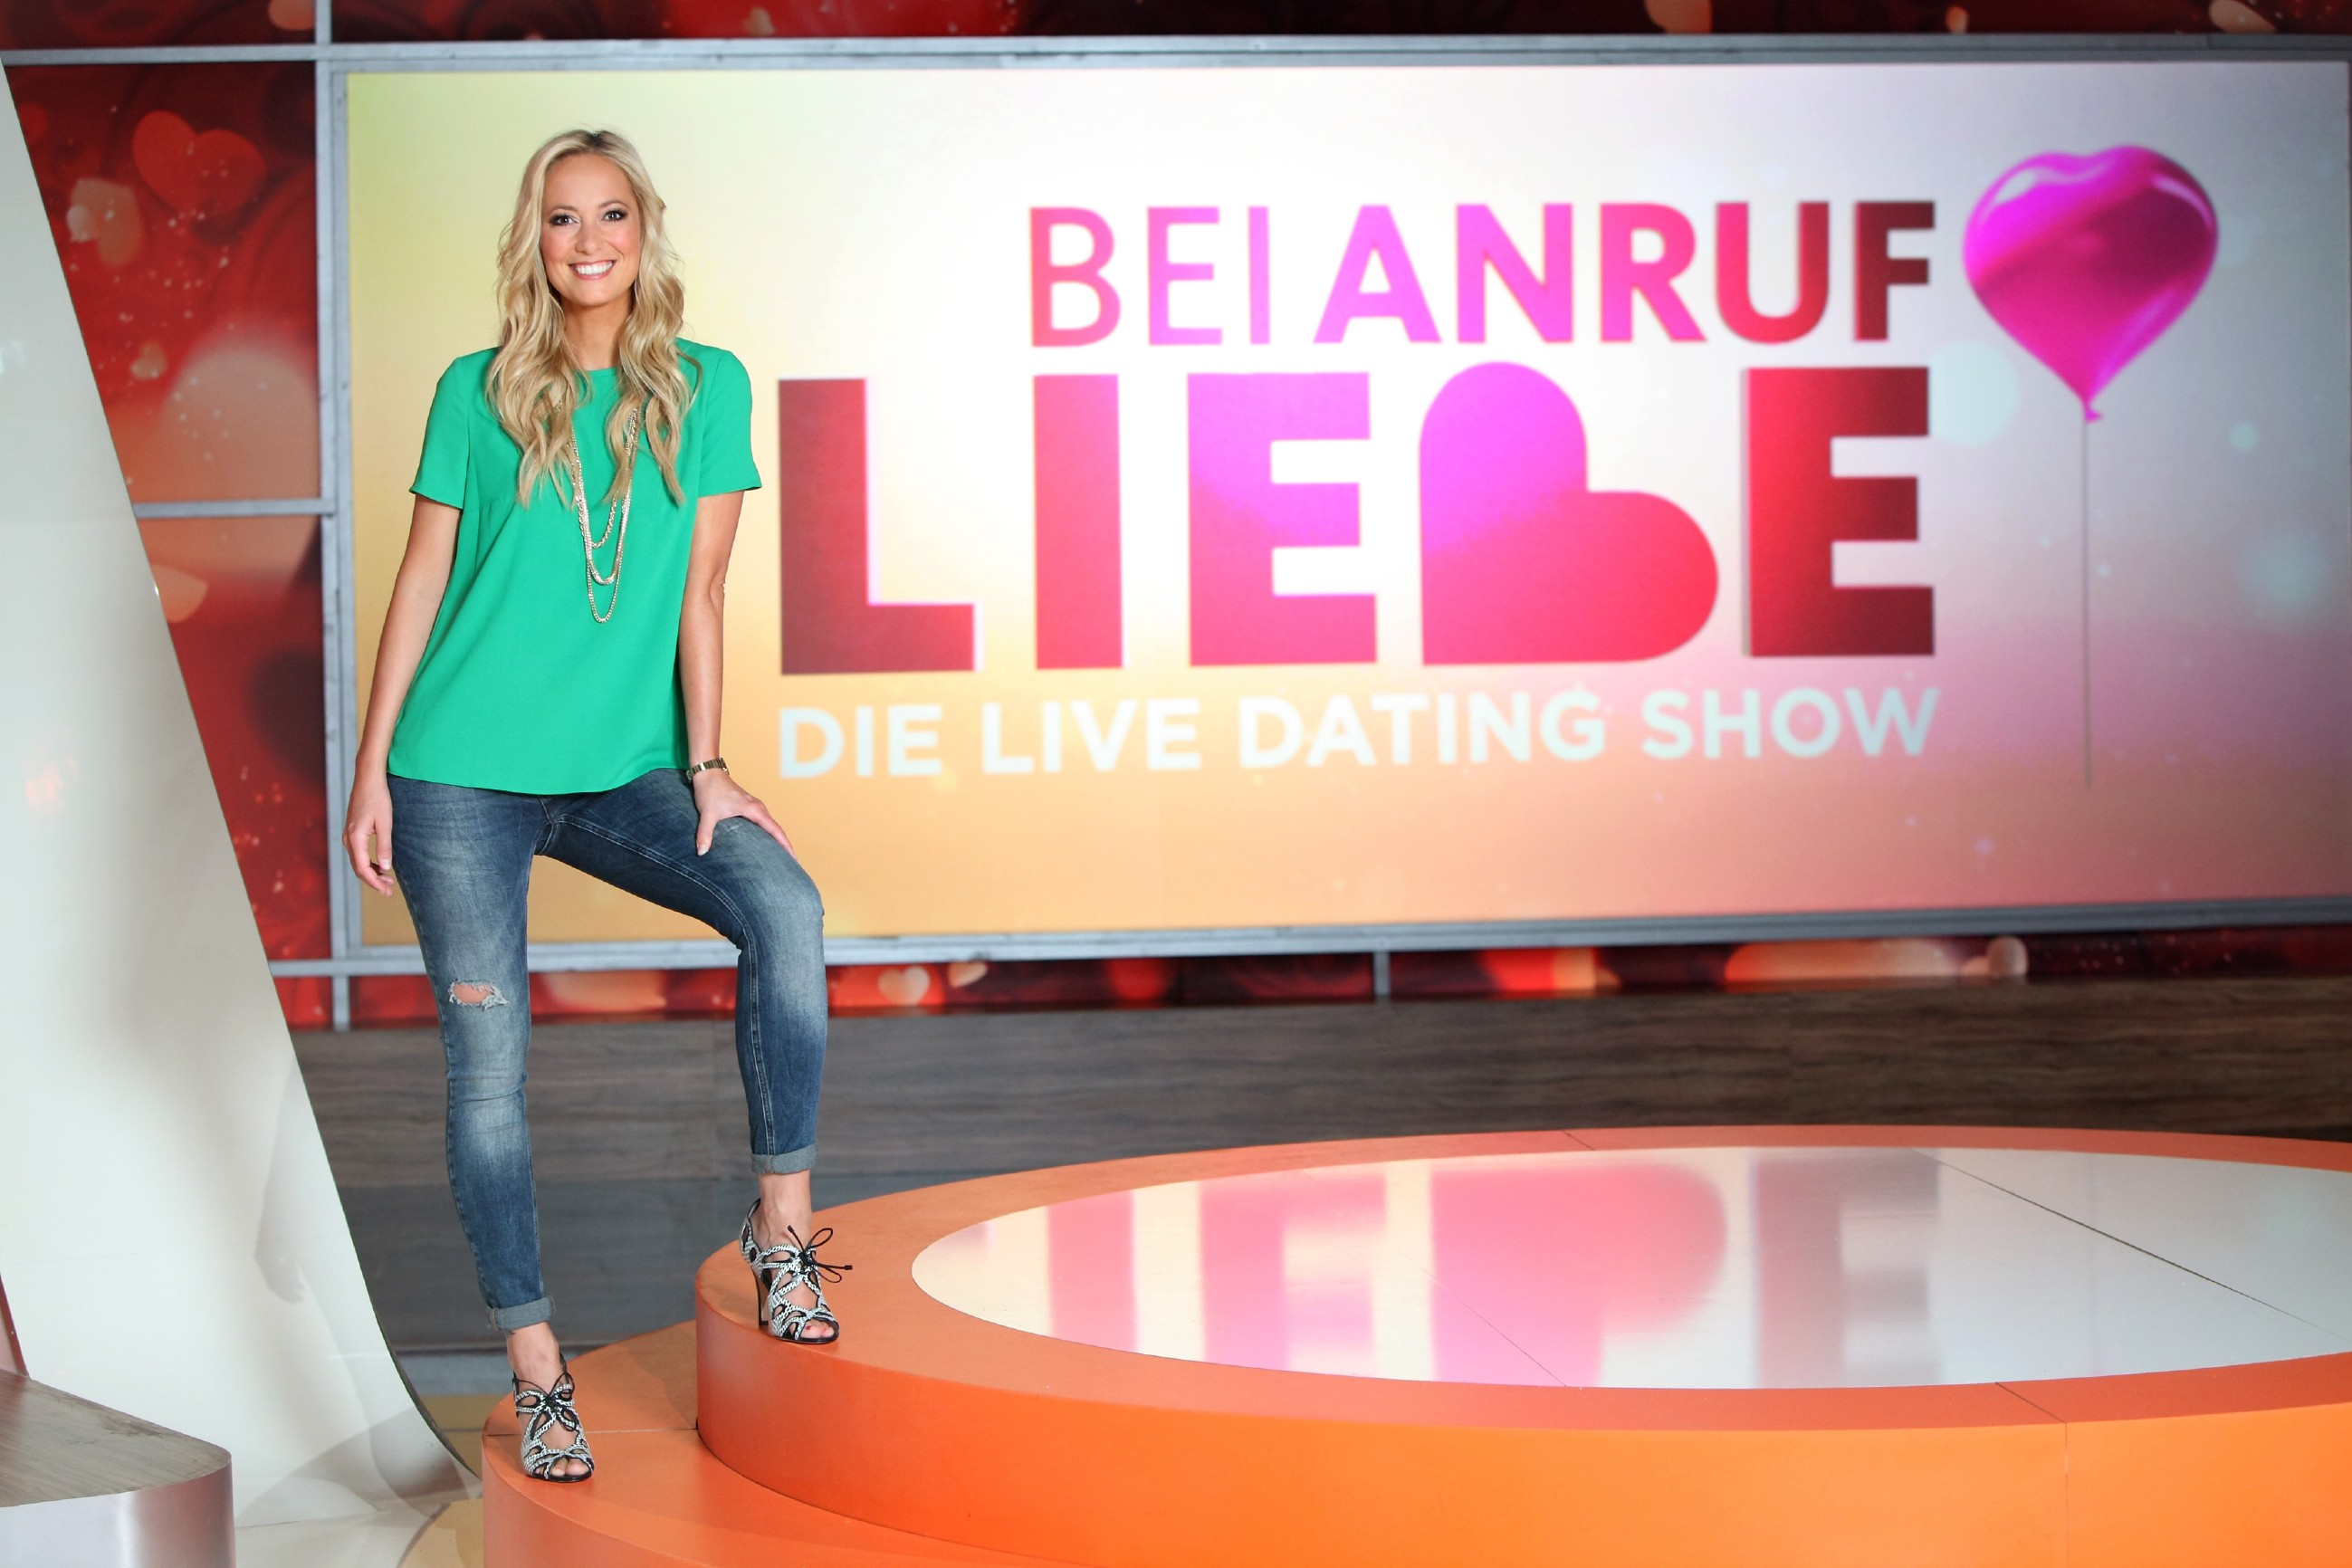 Dating show rtl 5